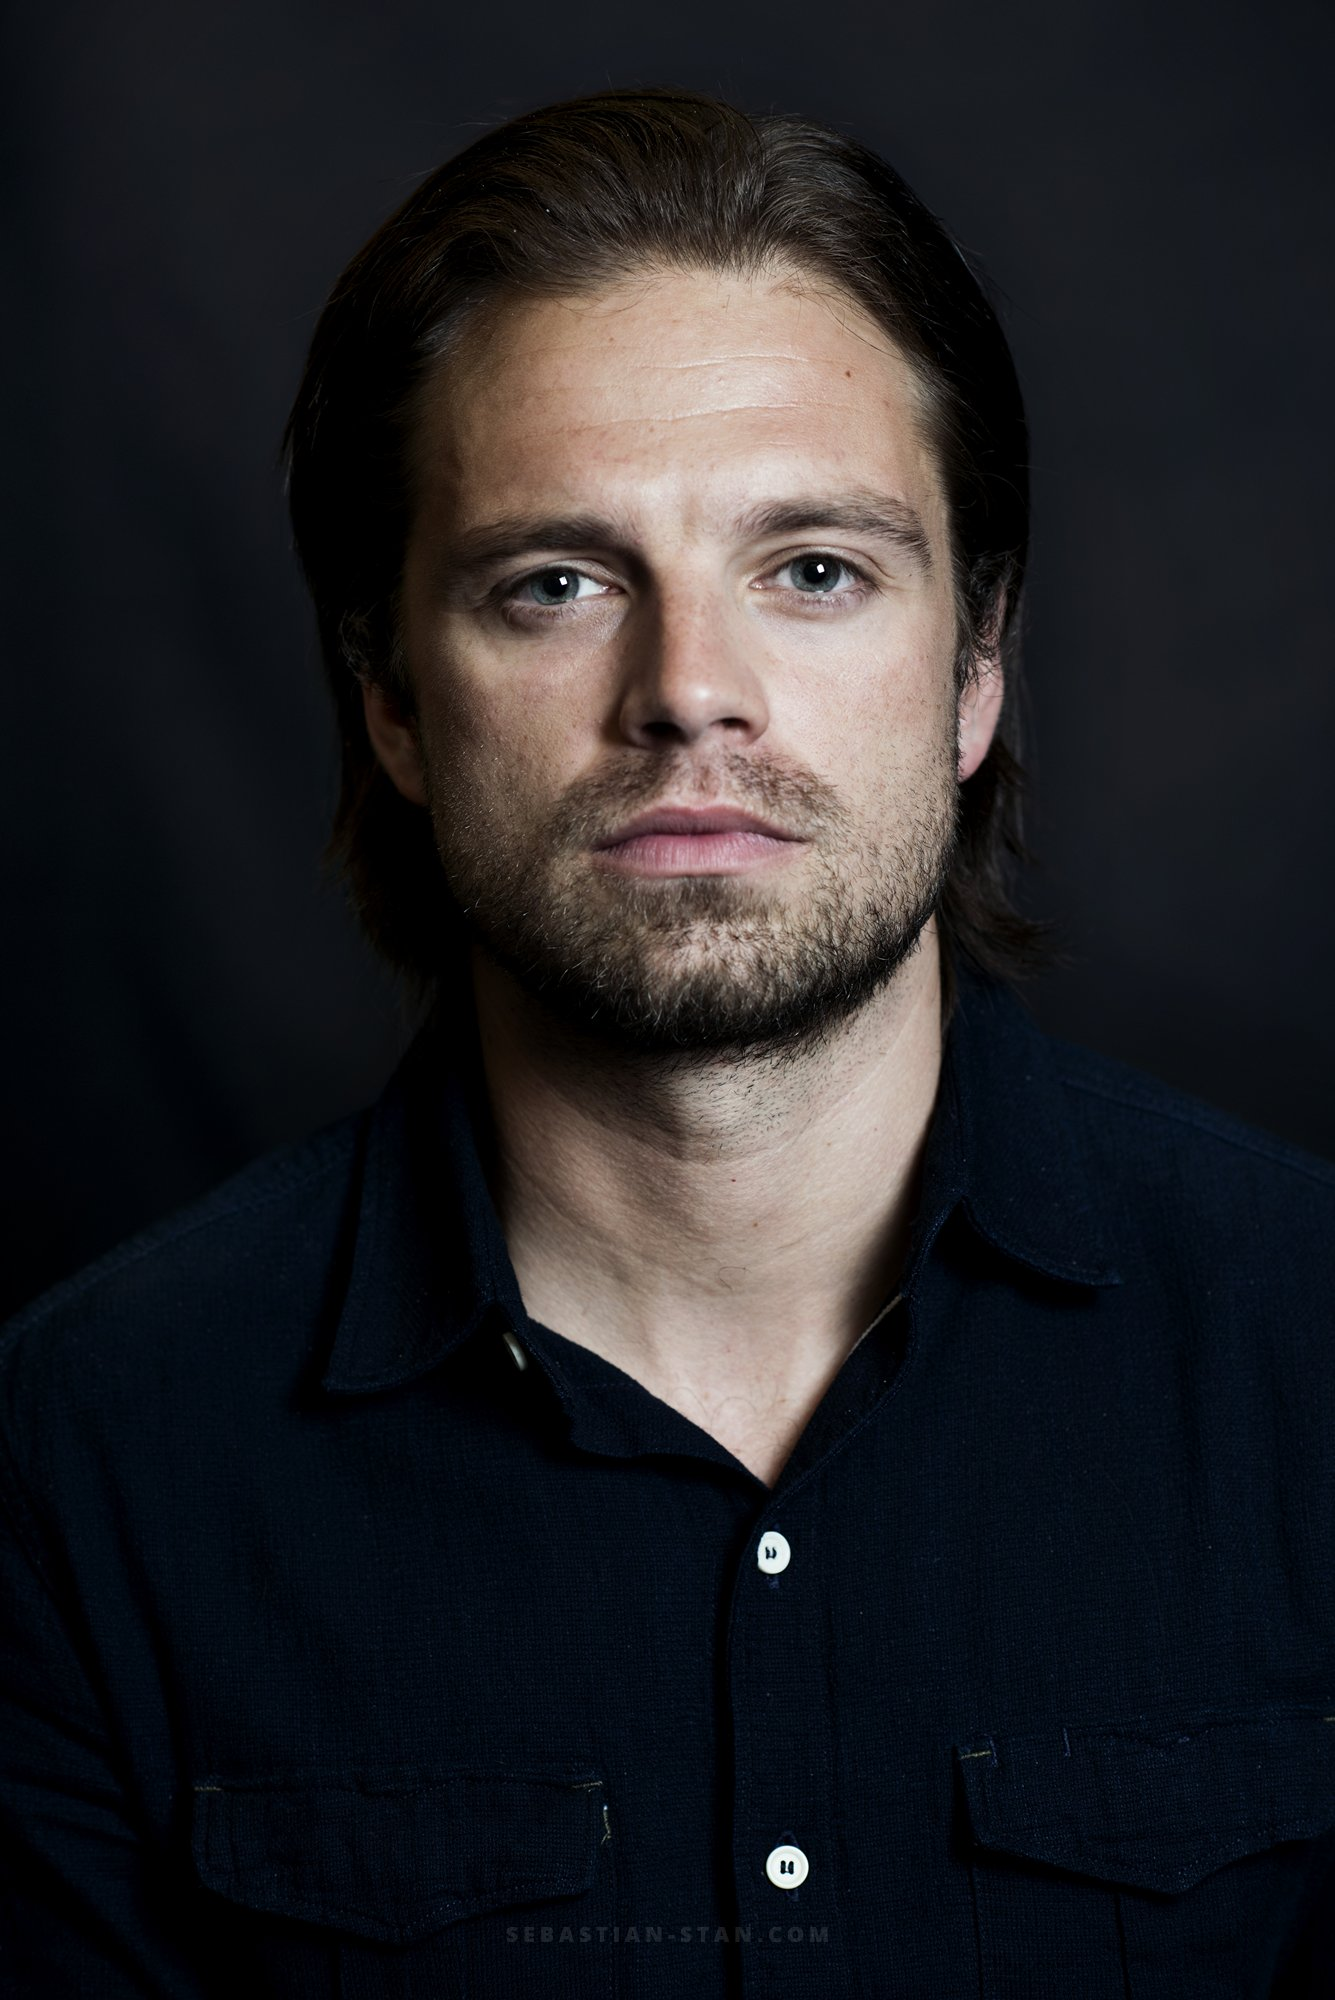 ... Magazine Portrait from TIFF - Sebastian Stan Fan - Sebastian-Stan.com